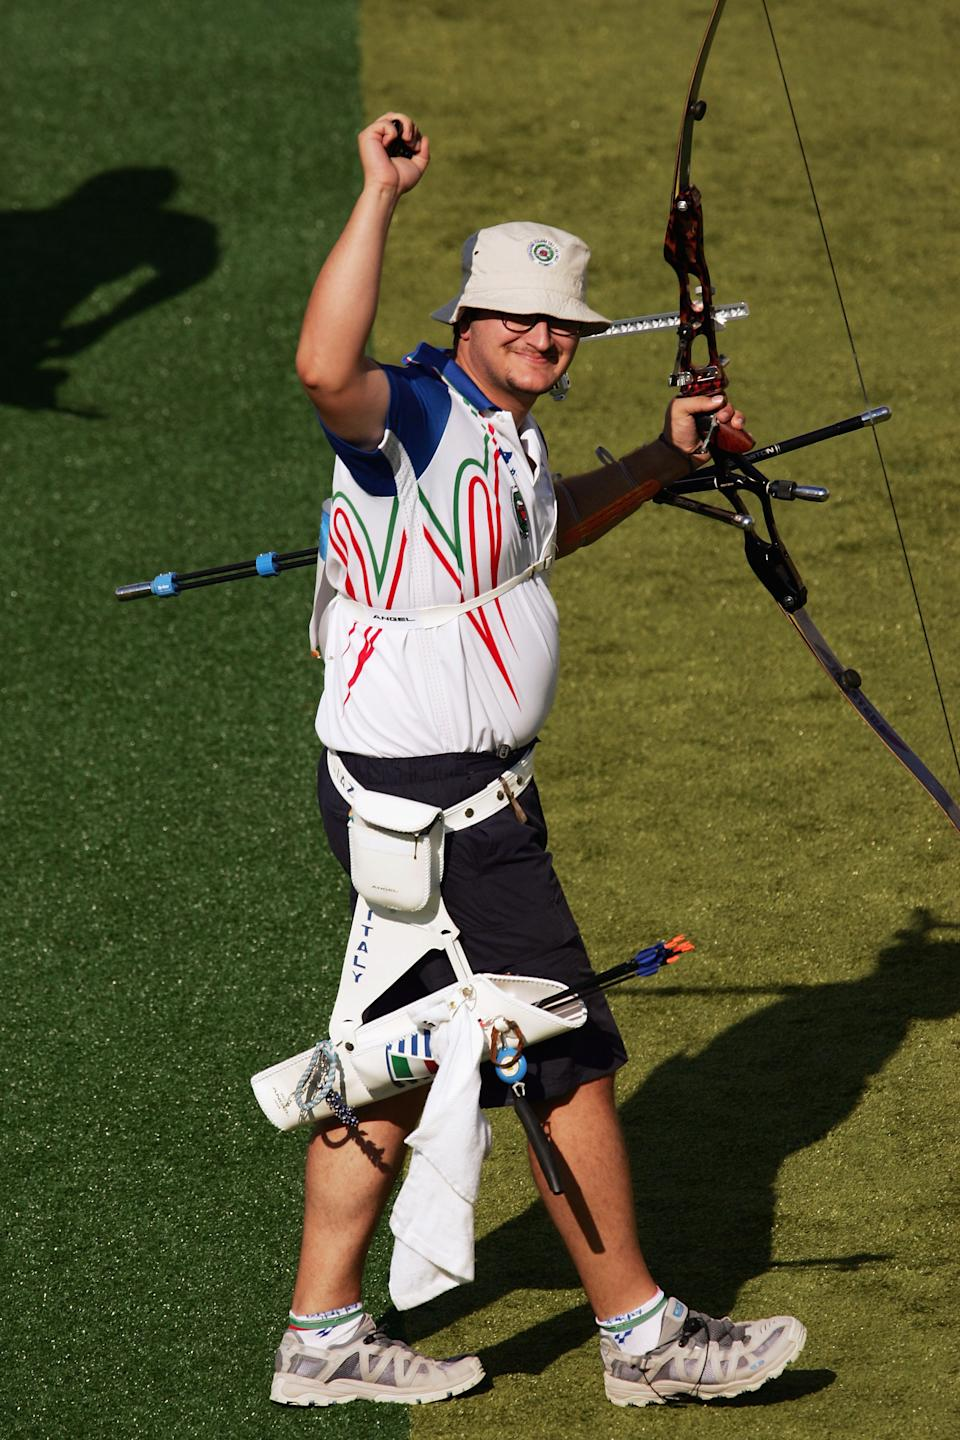 ATHENS - AUGUST 19: Marco Galiazzo of Italy celebrates his victory against Laurence Godfrey in the men's individual semifinal match on August 19, 2004 during the Athens 2004 Summer Olympic Games at Panathinaiko Stadium in Athens, Greece. (Photo by Nick Laham/Getty Images)